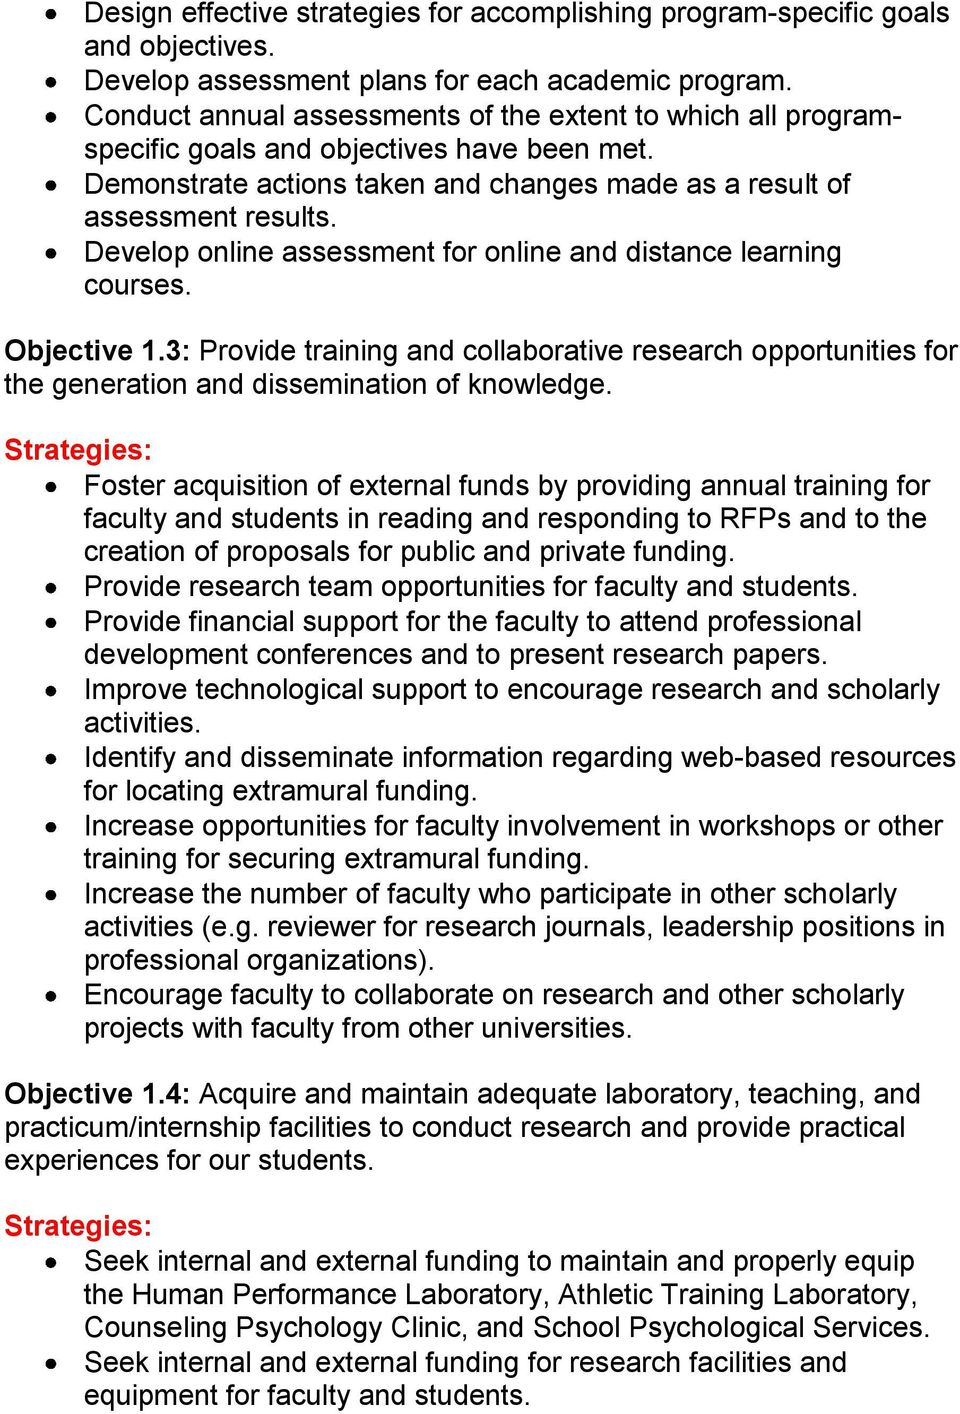 Develop online assessment for online and distance learning courses. Objective 1.3: Provide training and collaborative research opportunities for the generation and dissemination of knowledge.